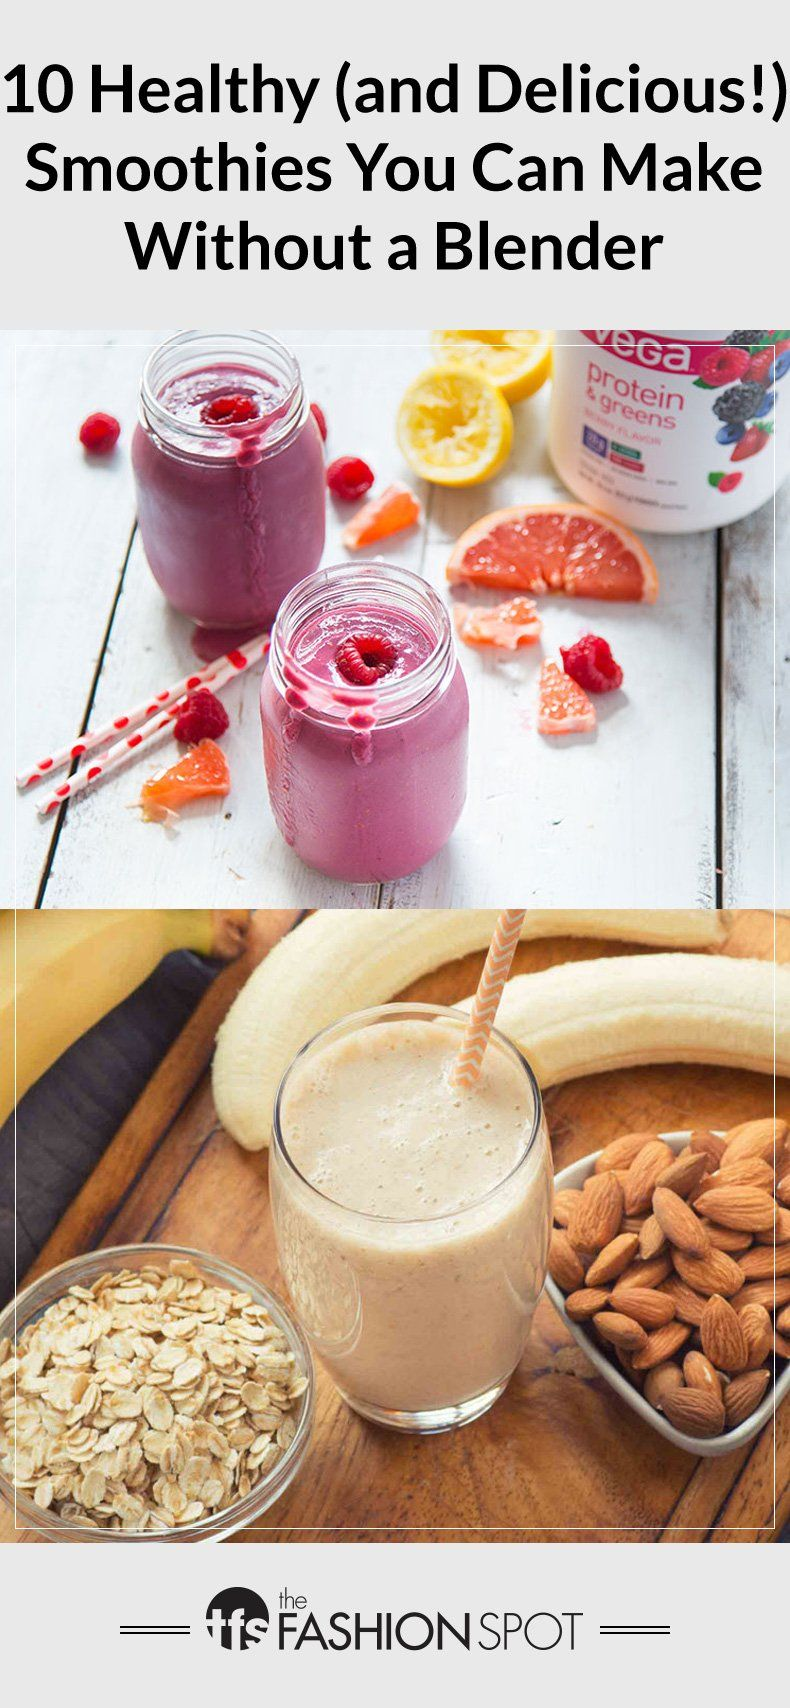 how to make a protein smoothie without a blender